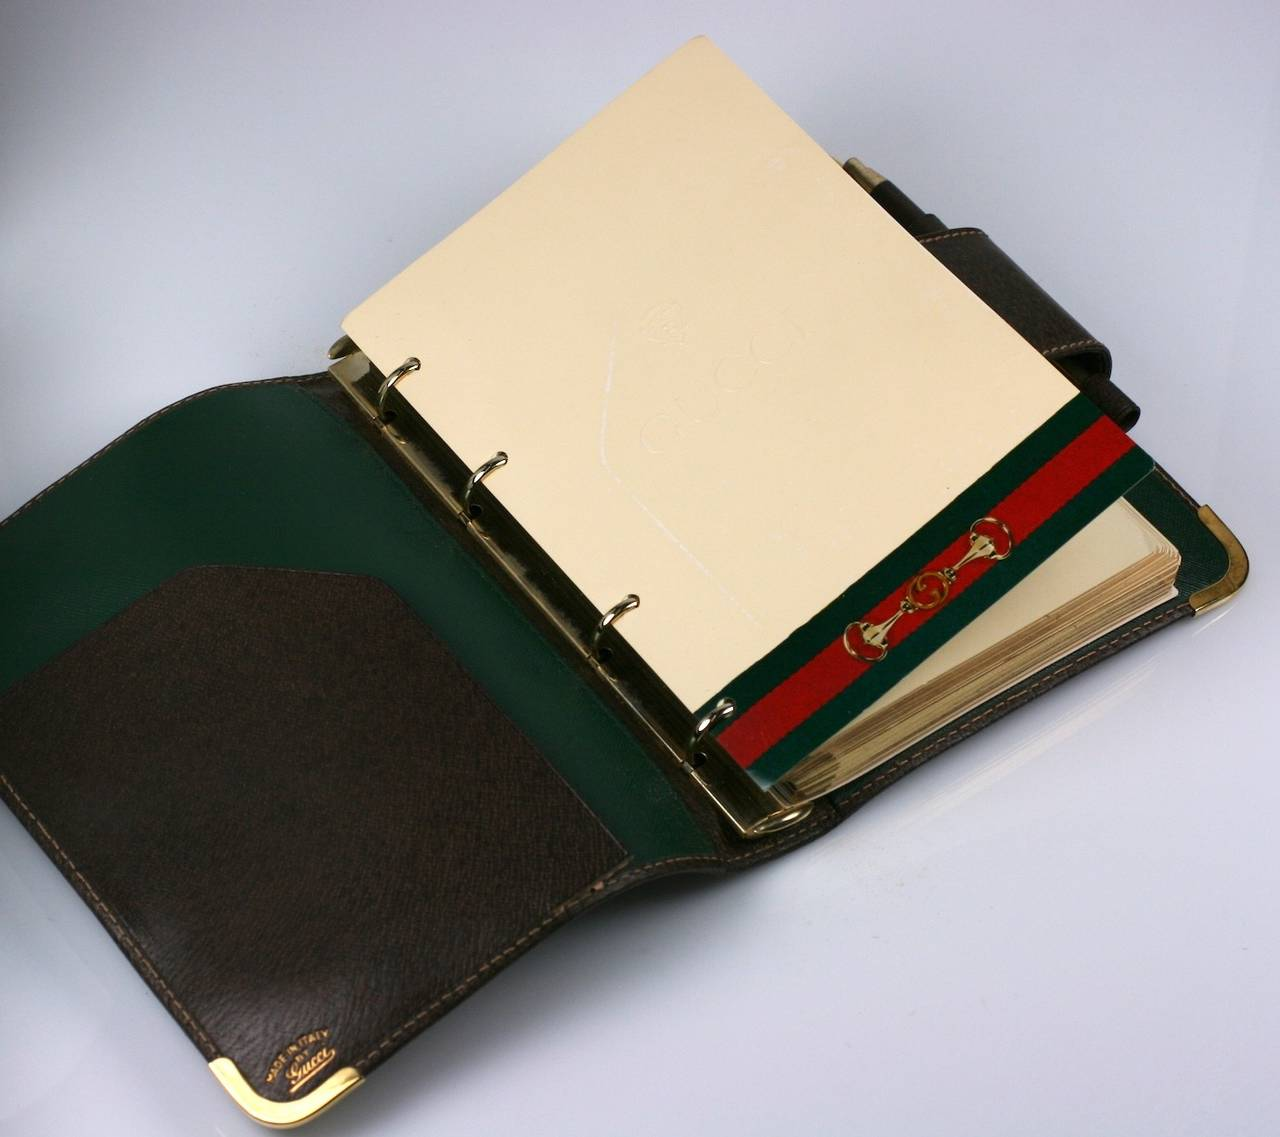 Gucci Unused Original Leather Planner 4